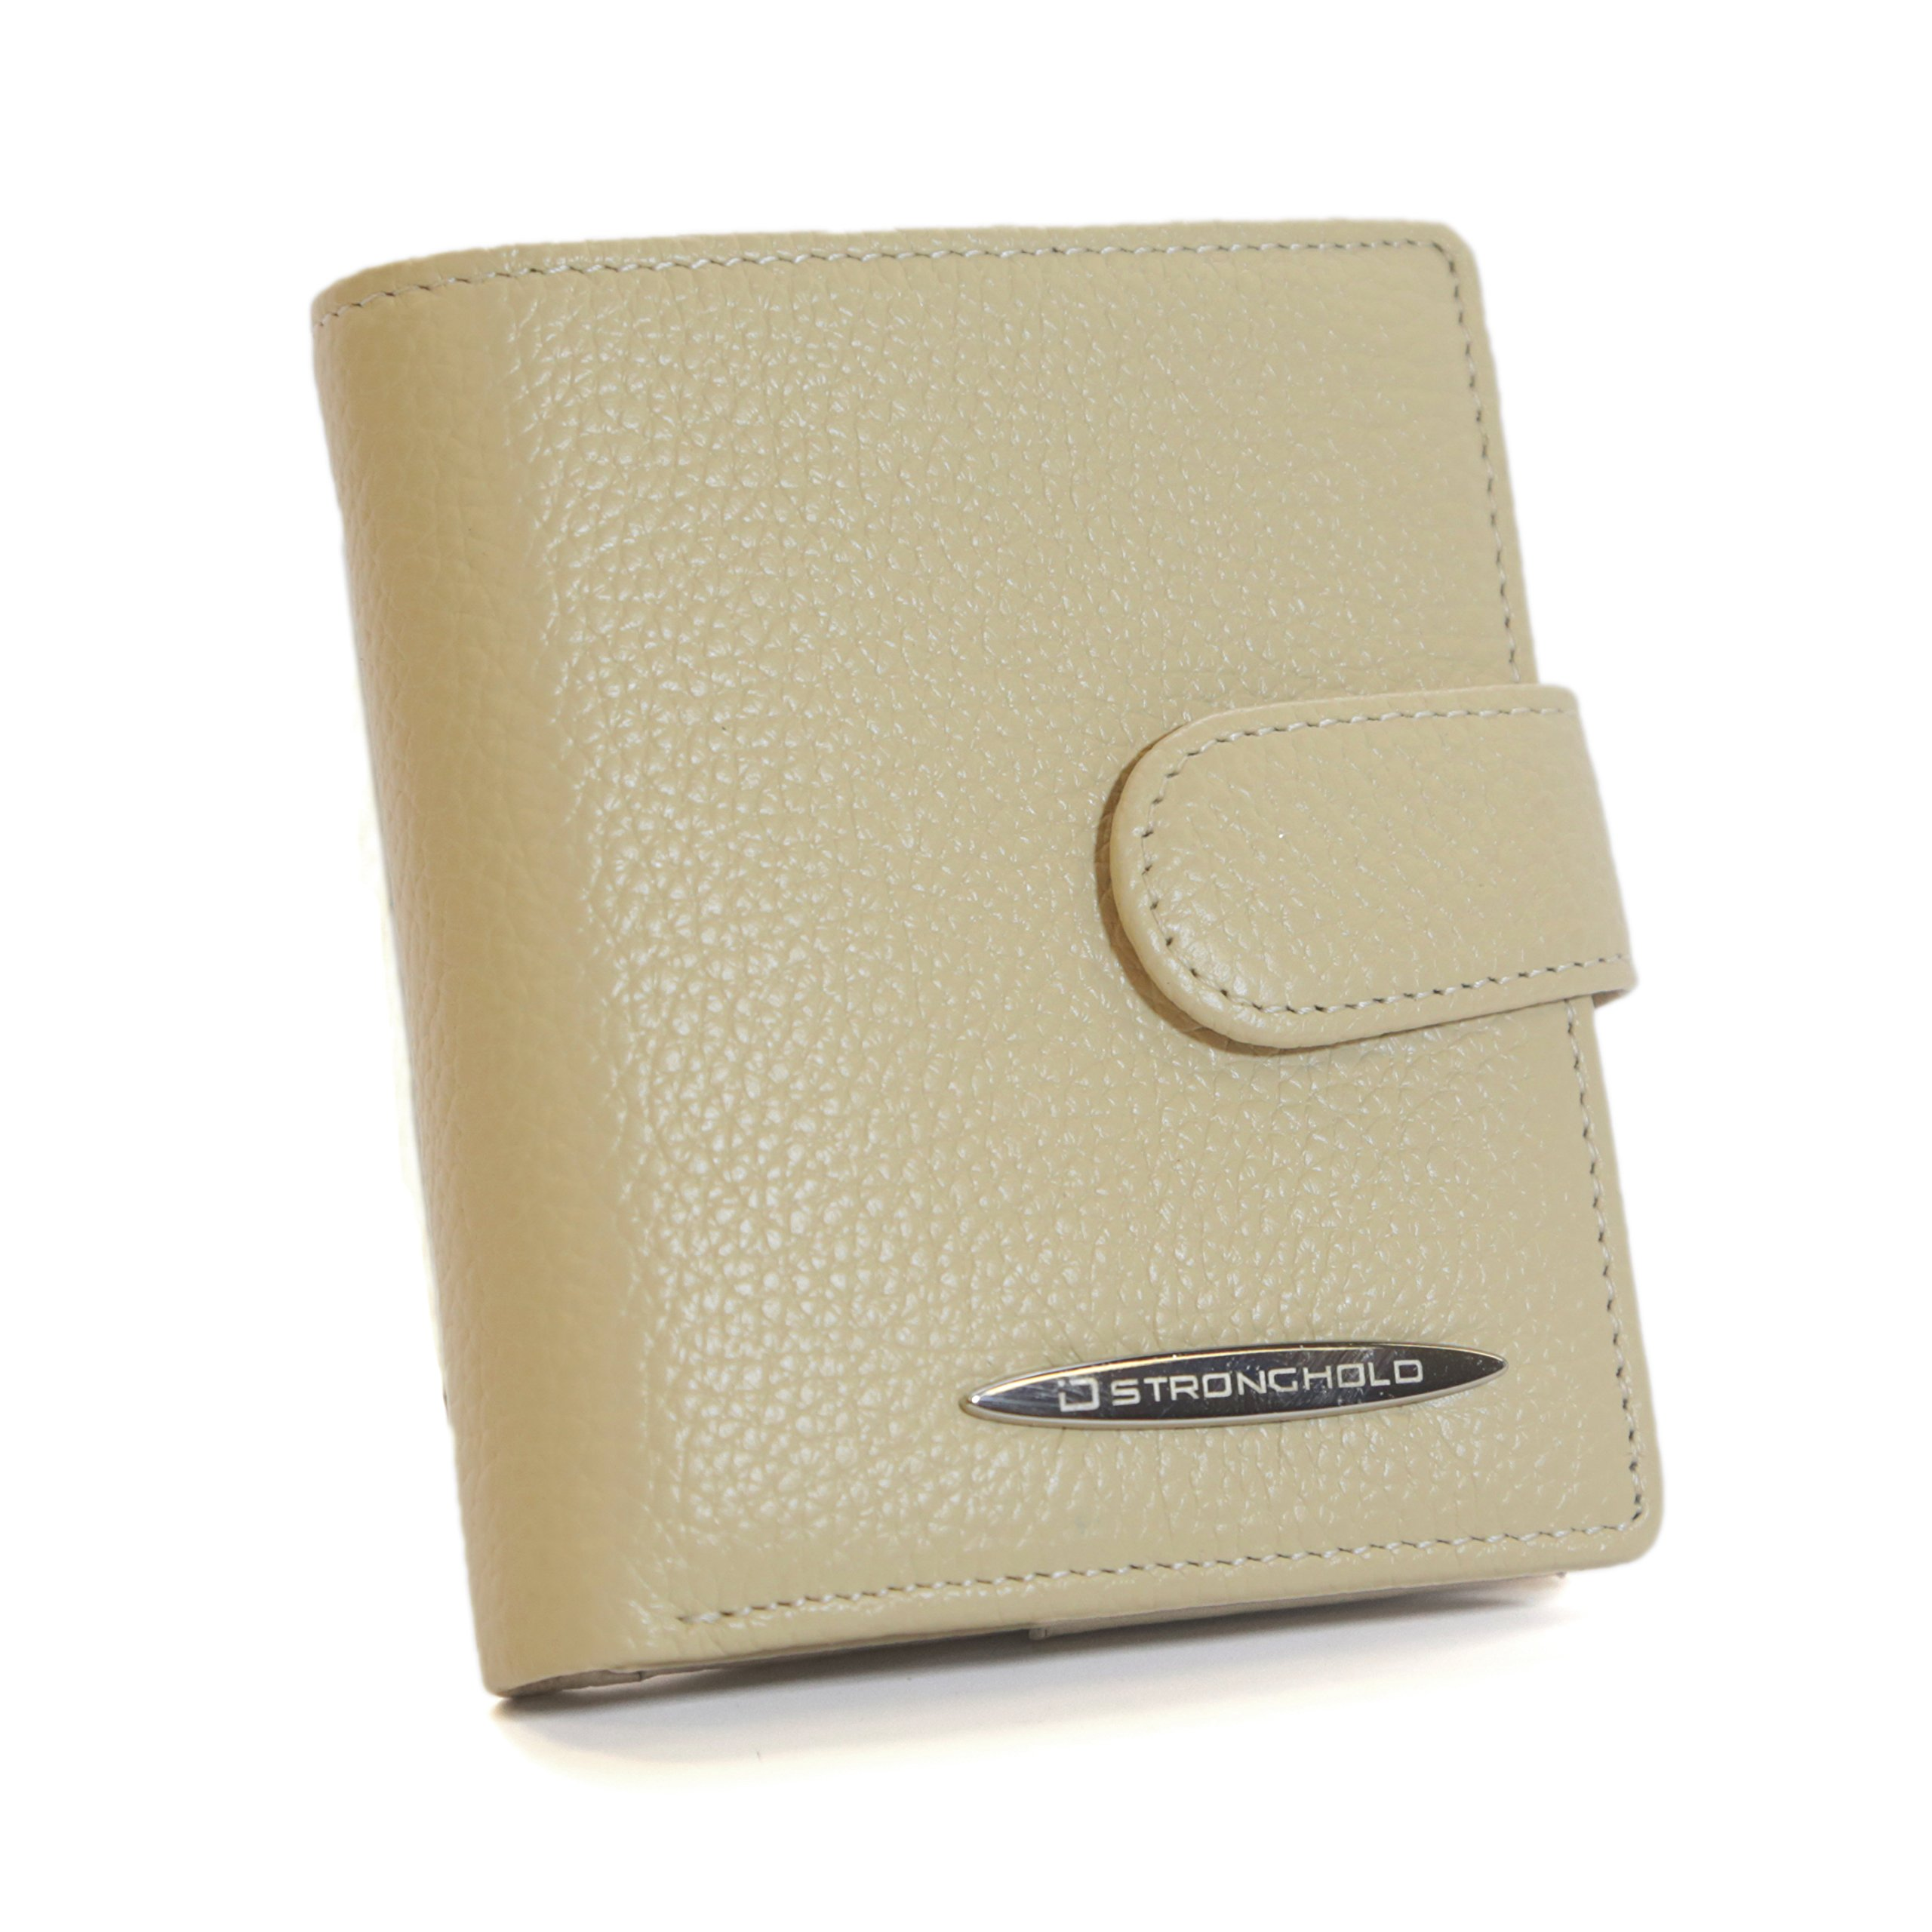 ID Stronghold Small RFID Wallet Bifold - RFID Blocking Ladies Wallet - Top Quality Leather